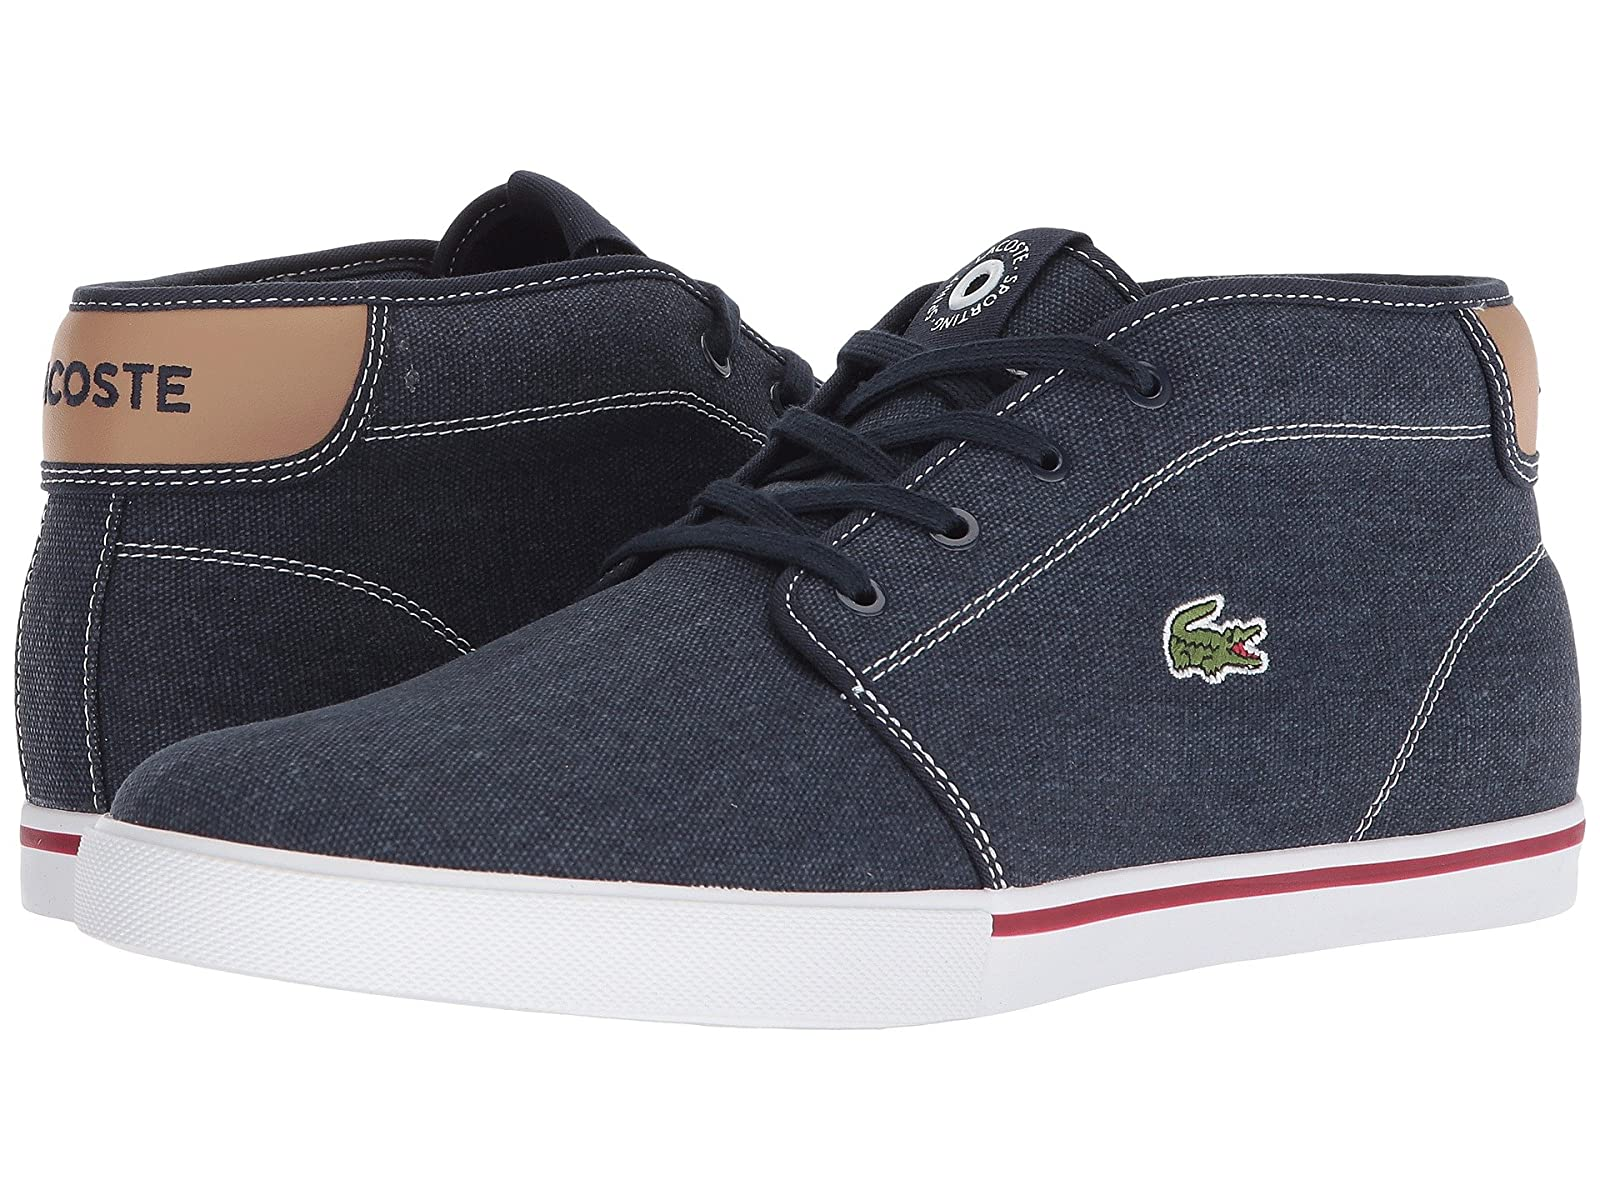 Lacoste Ampthill 118 1Atmospheric grades have affordable shoes